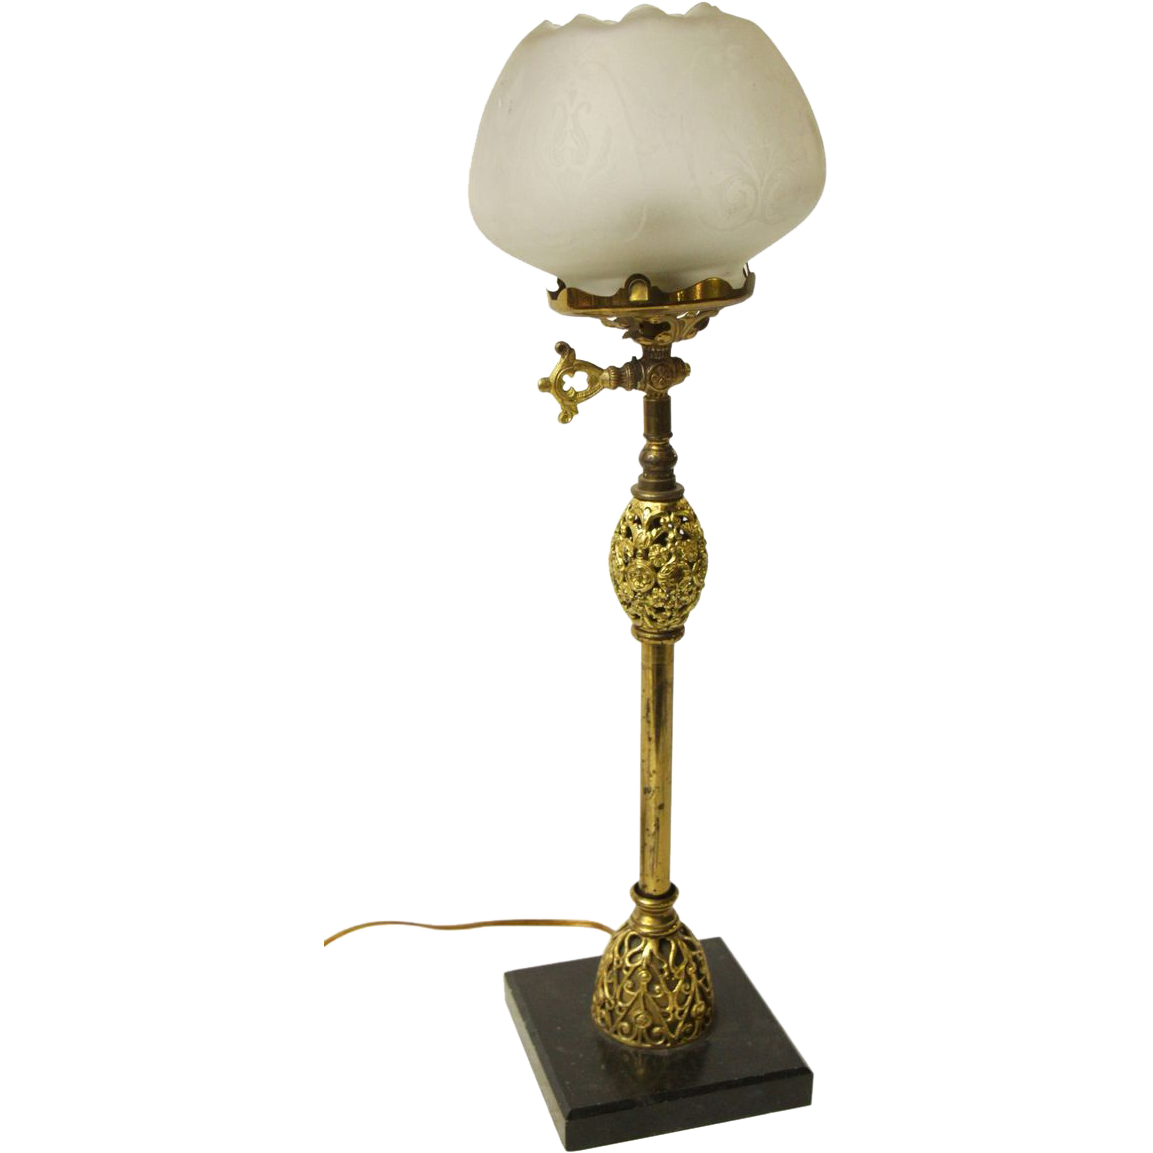 Pretty ornate table lamp with glass shade